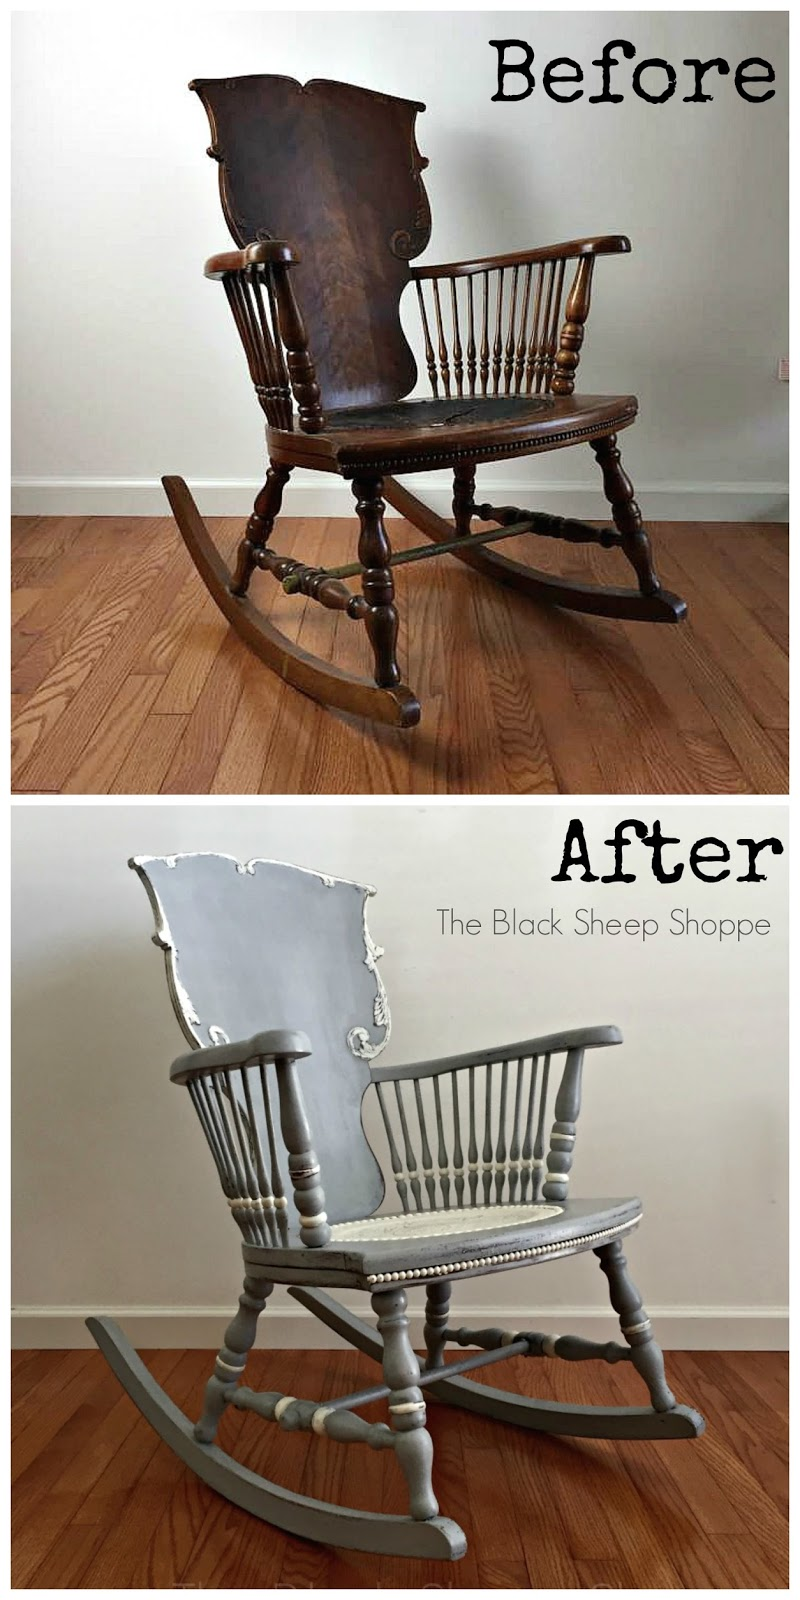 Before and after of antique rocking chair